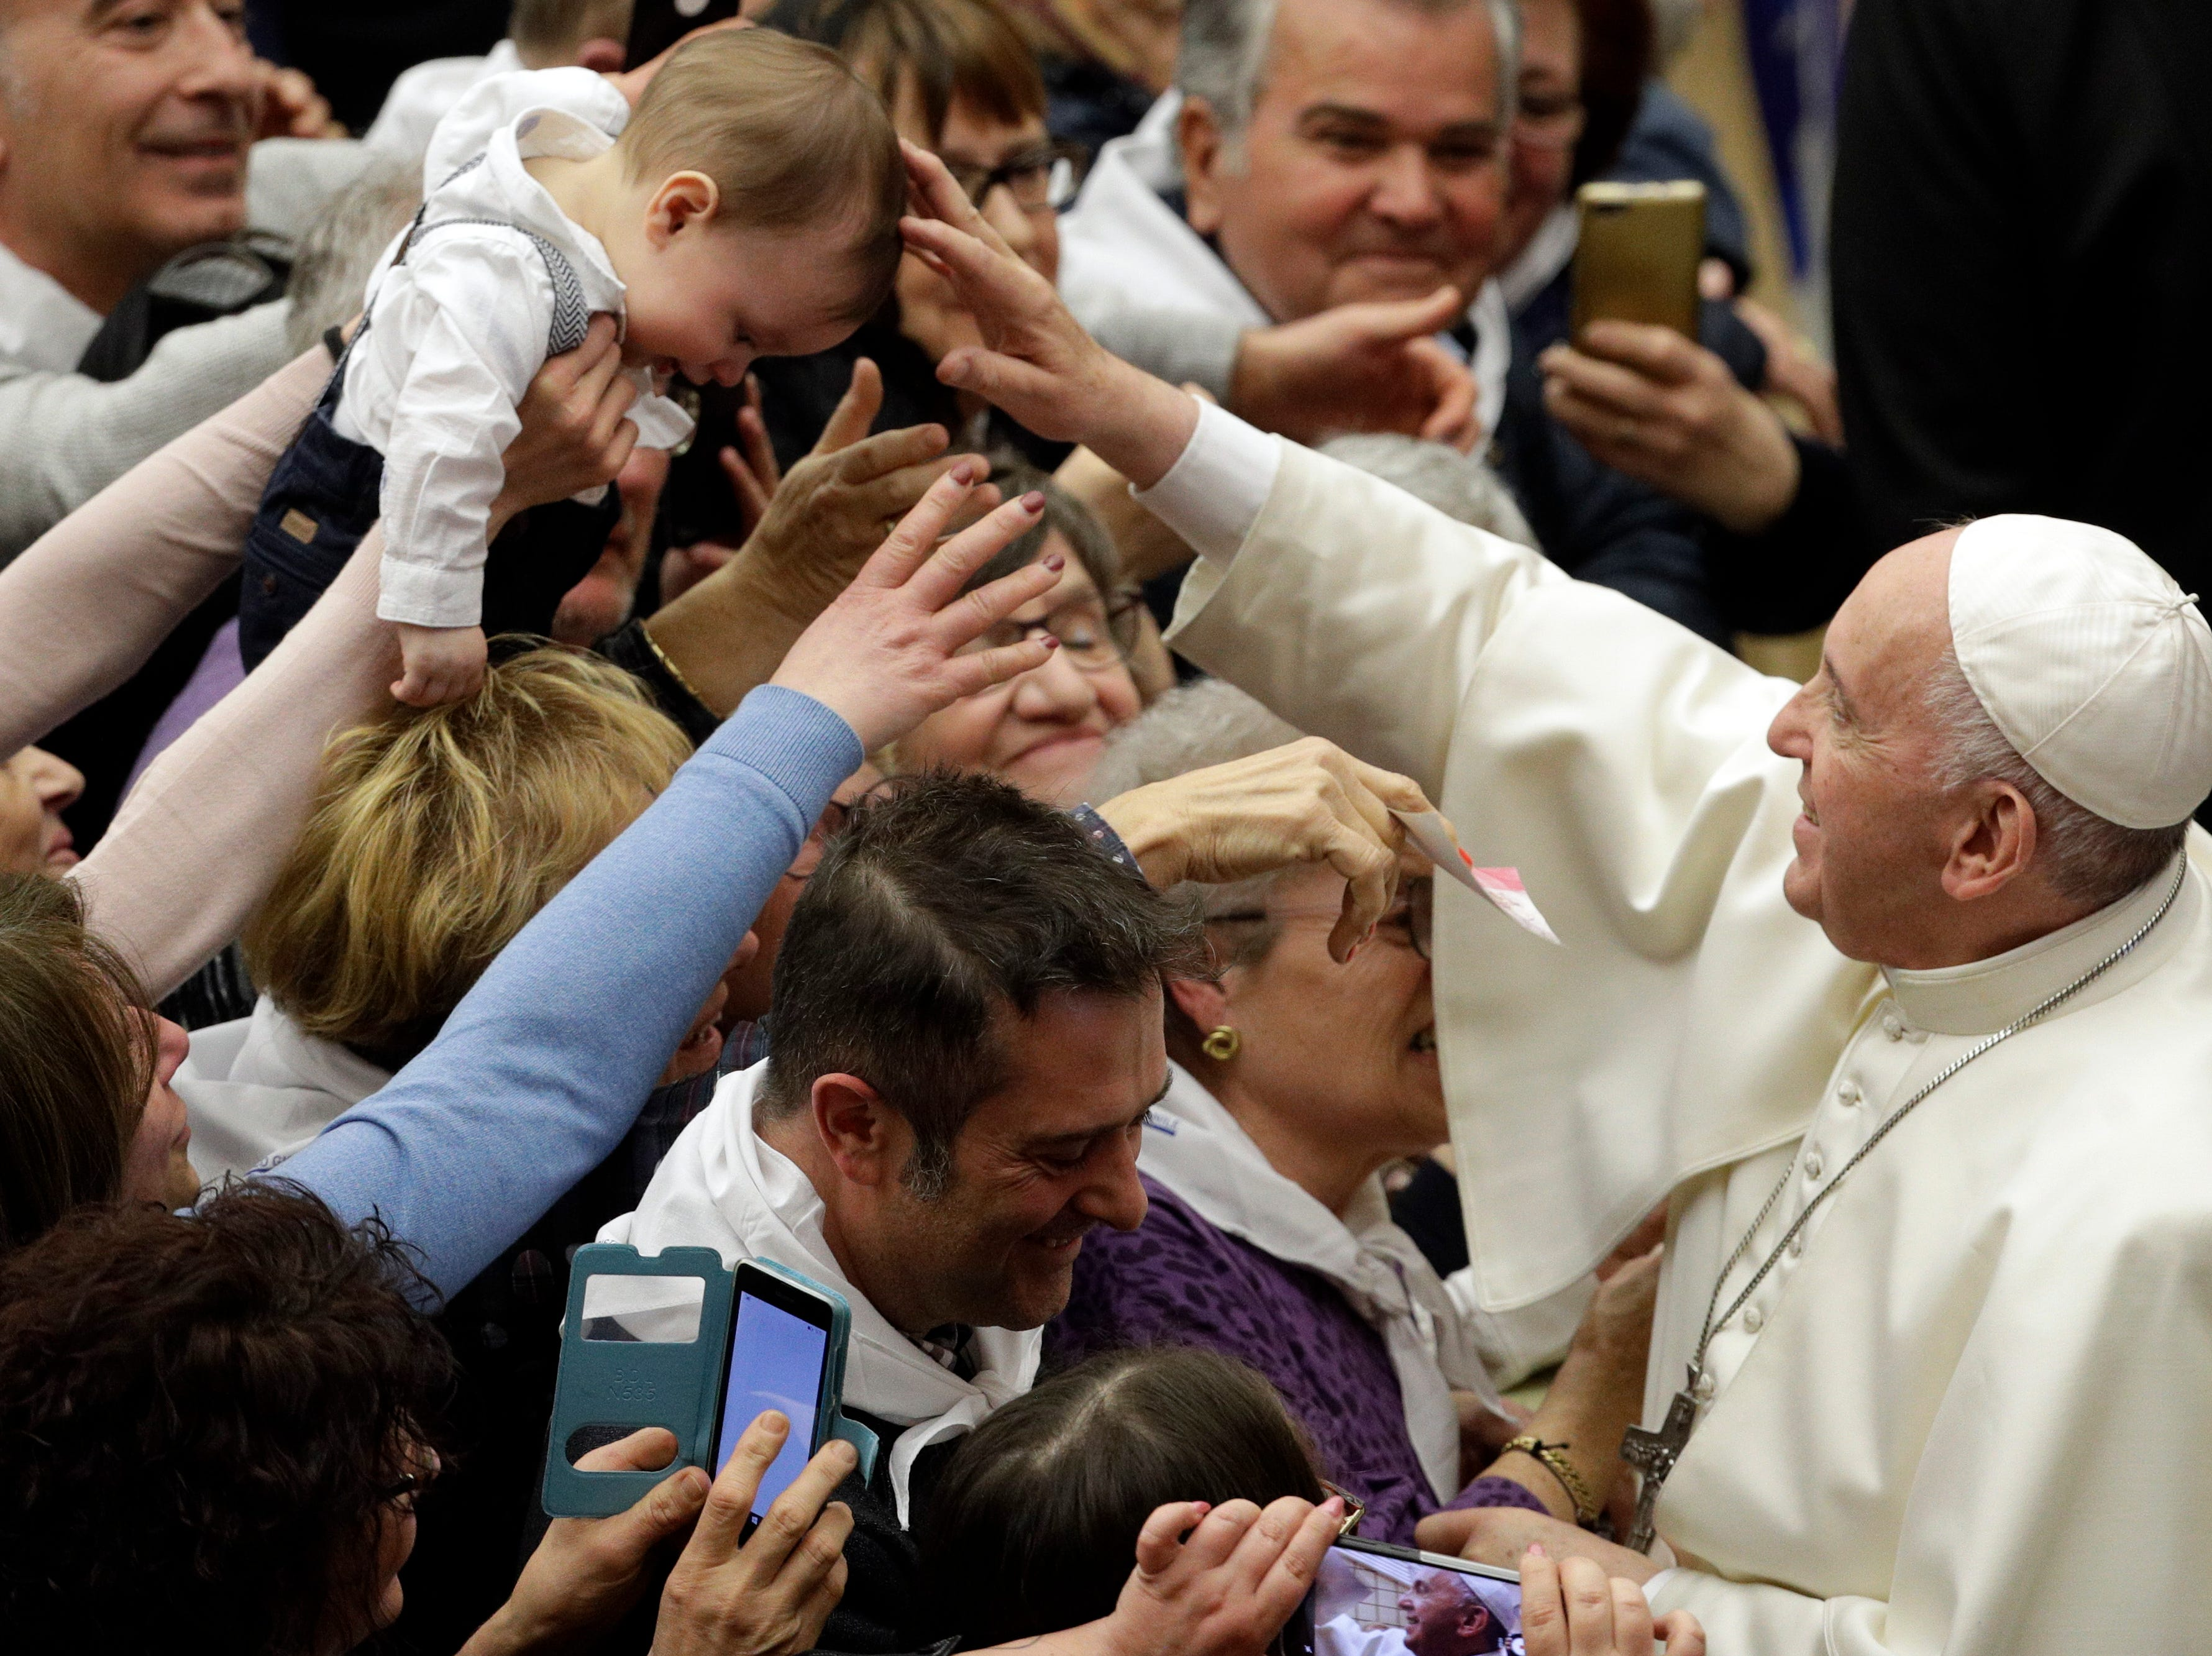 Pope Francis blesses a child on the occasion of an audience with members of youth tourism group in the Paul VI hall at the Vatican, Friday, March 22, 2019.